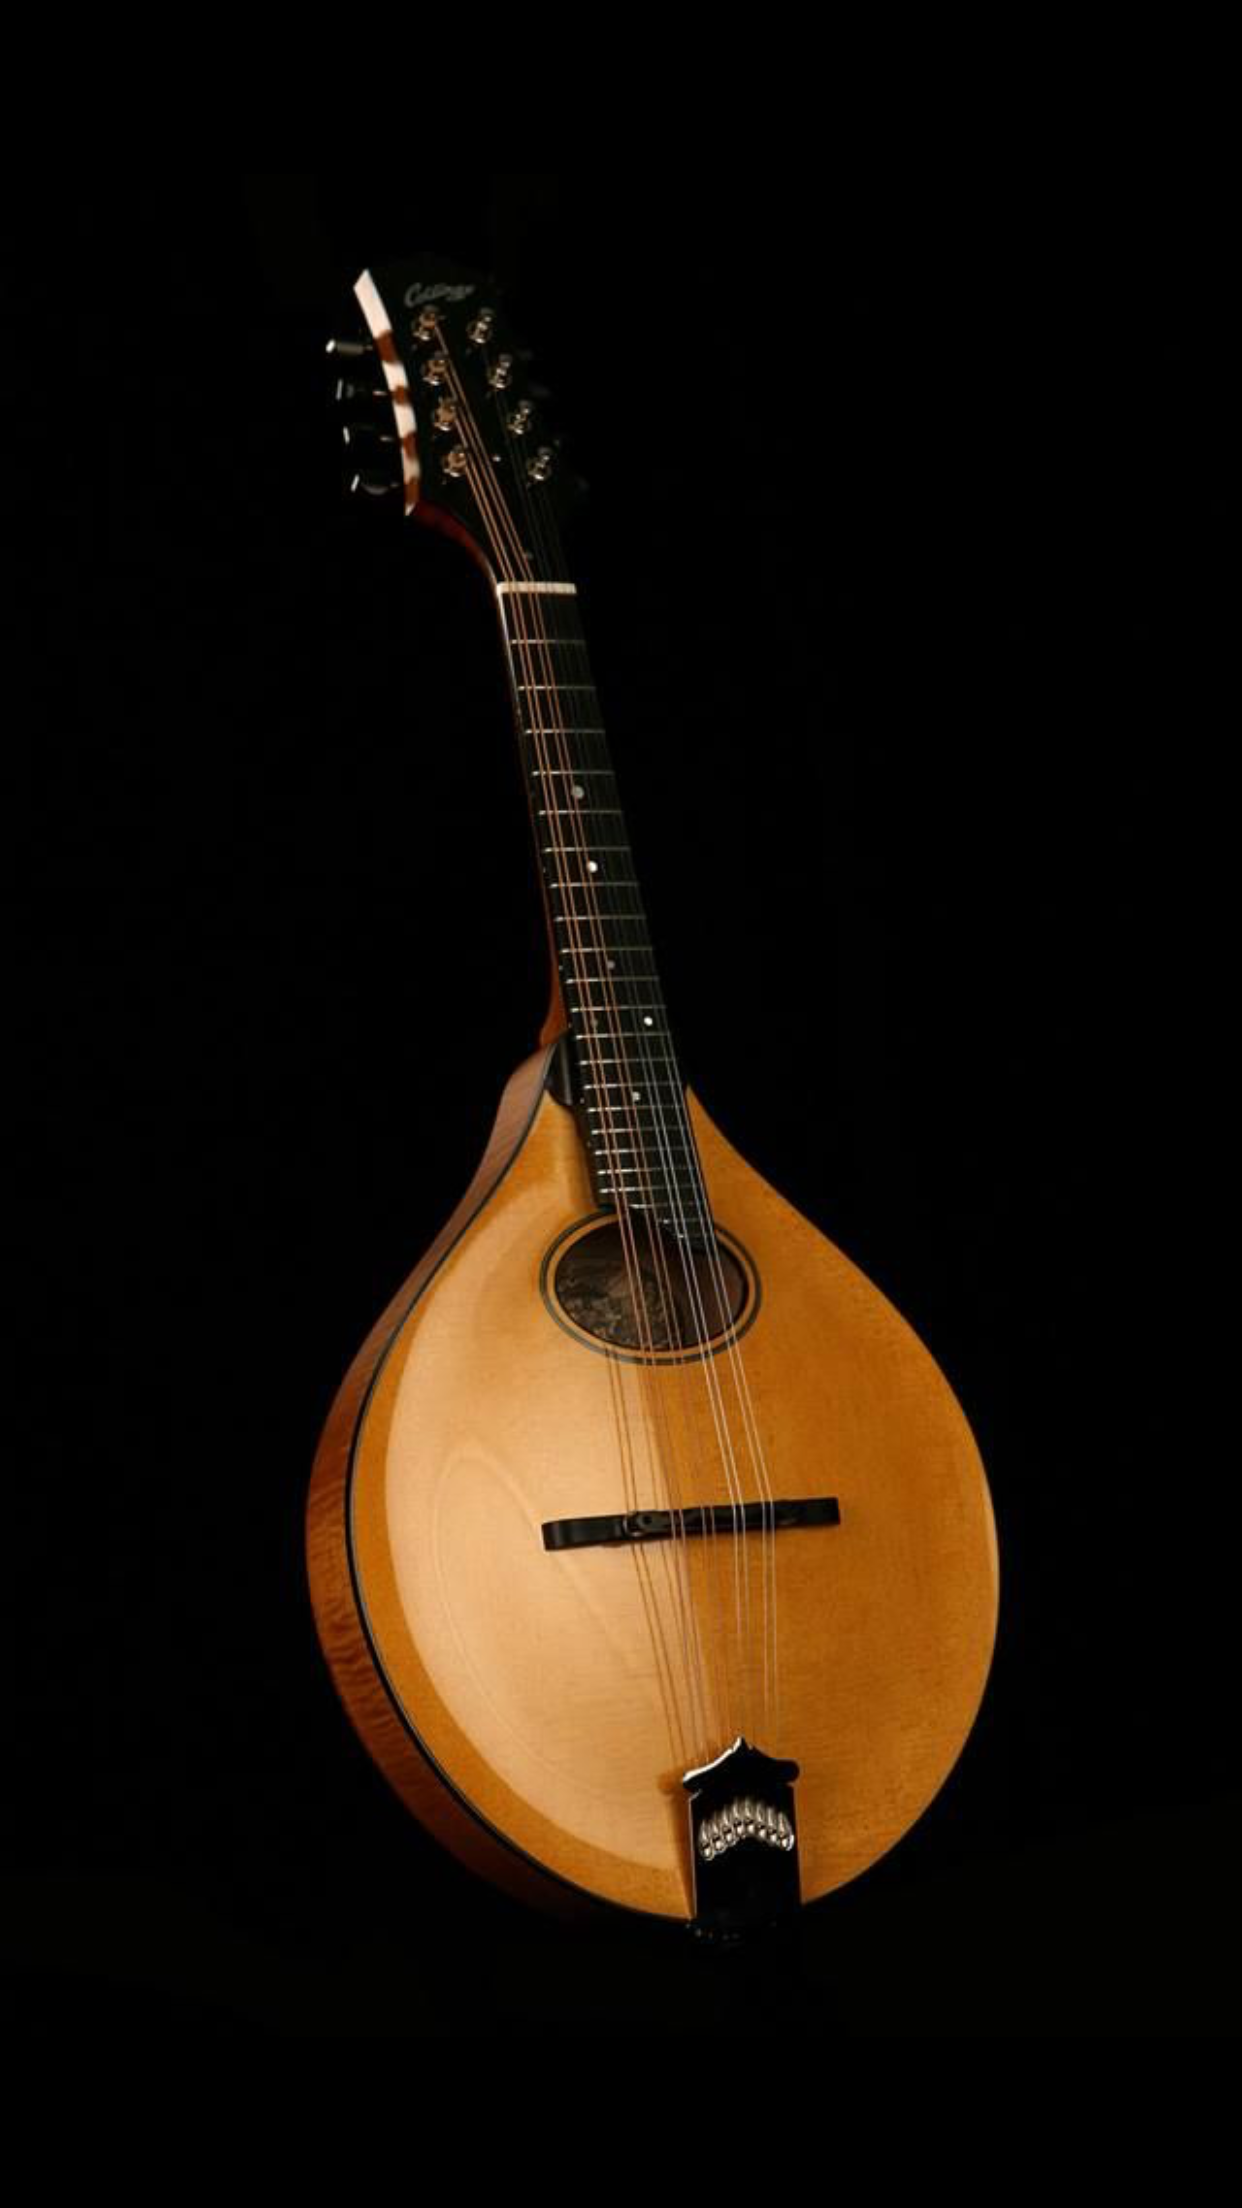 Mandolin picture